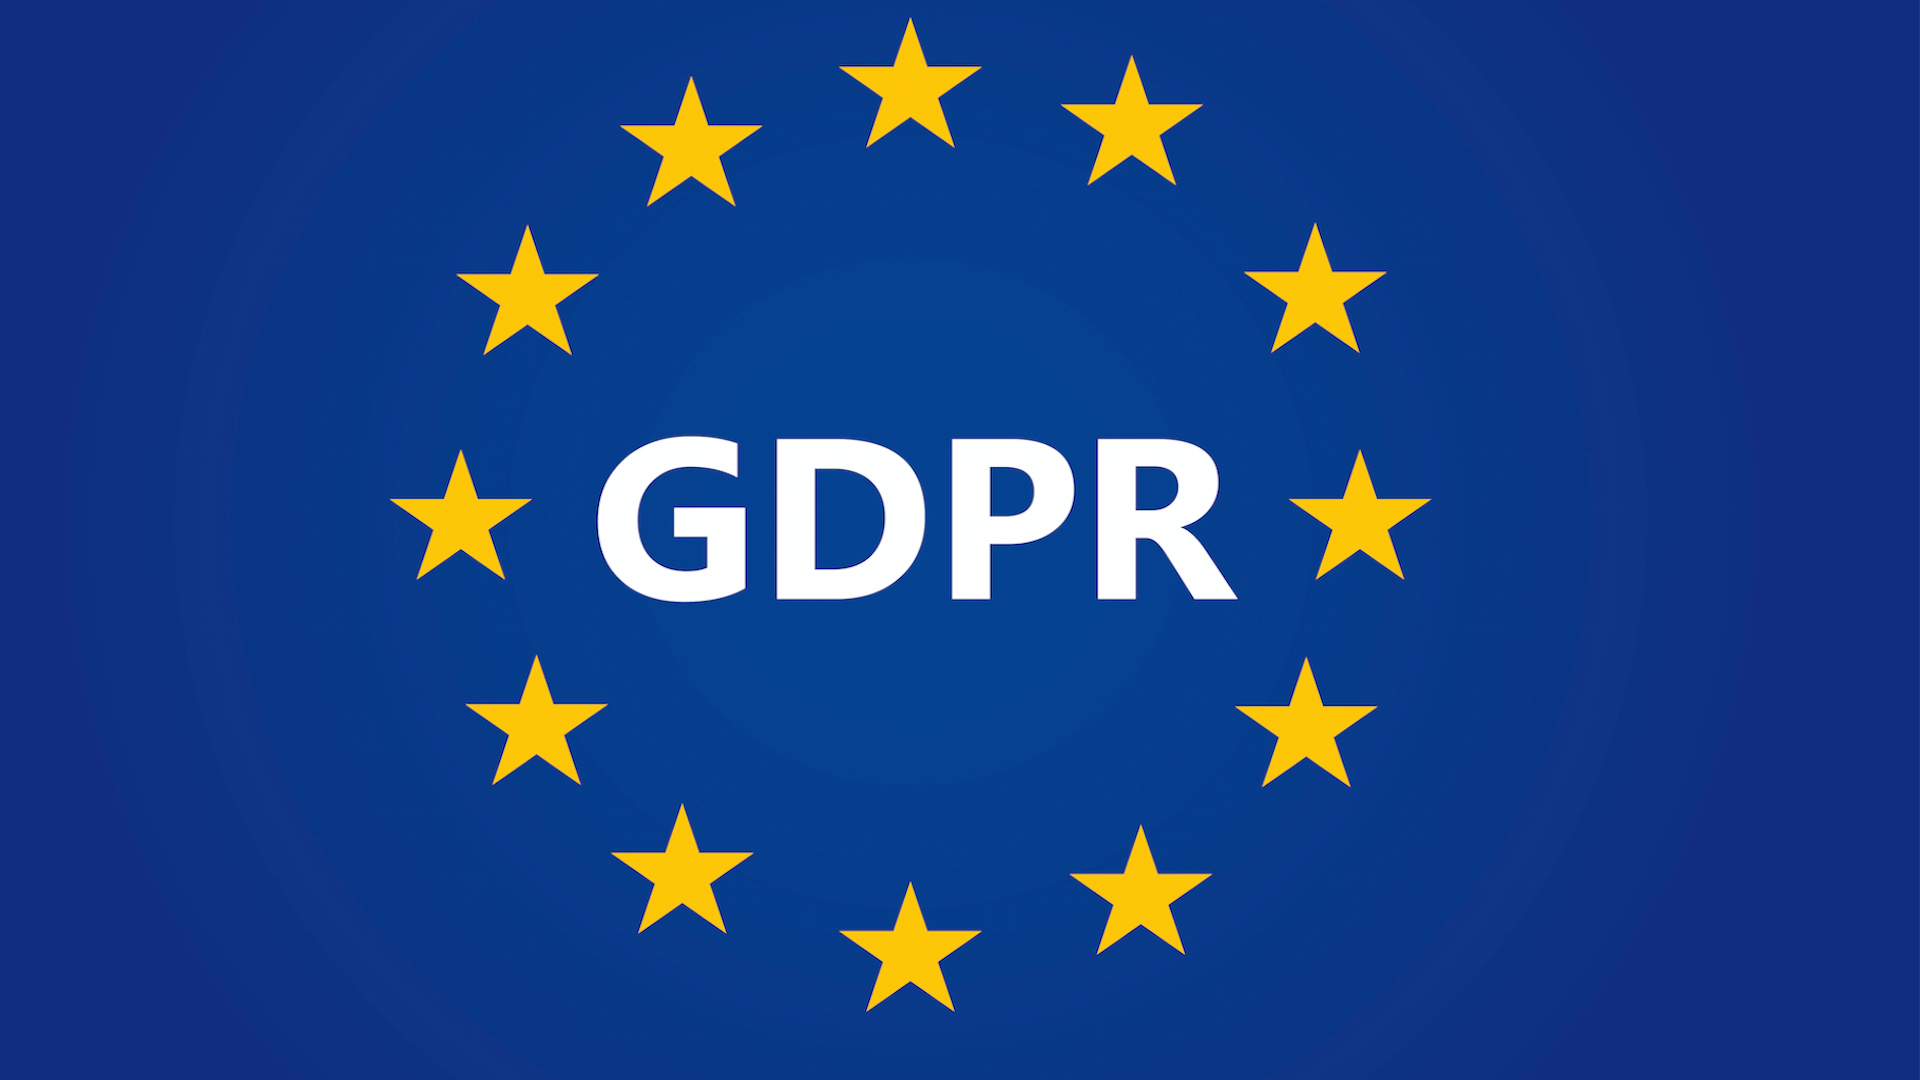 GDPR-with-stars.png